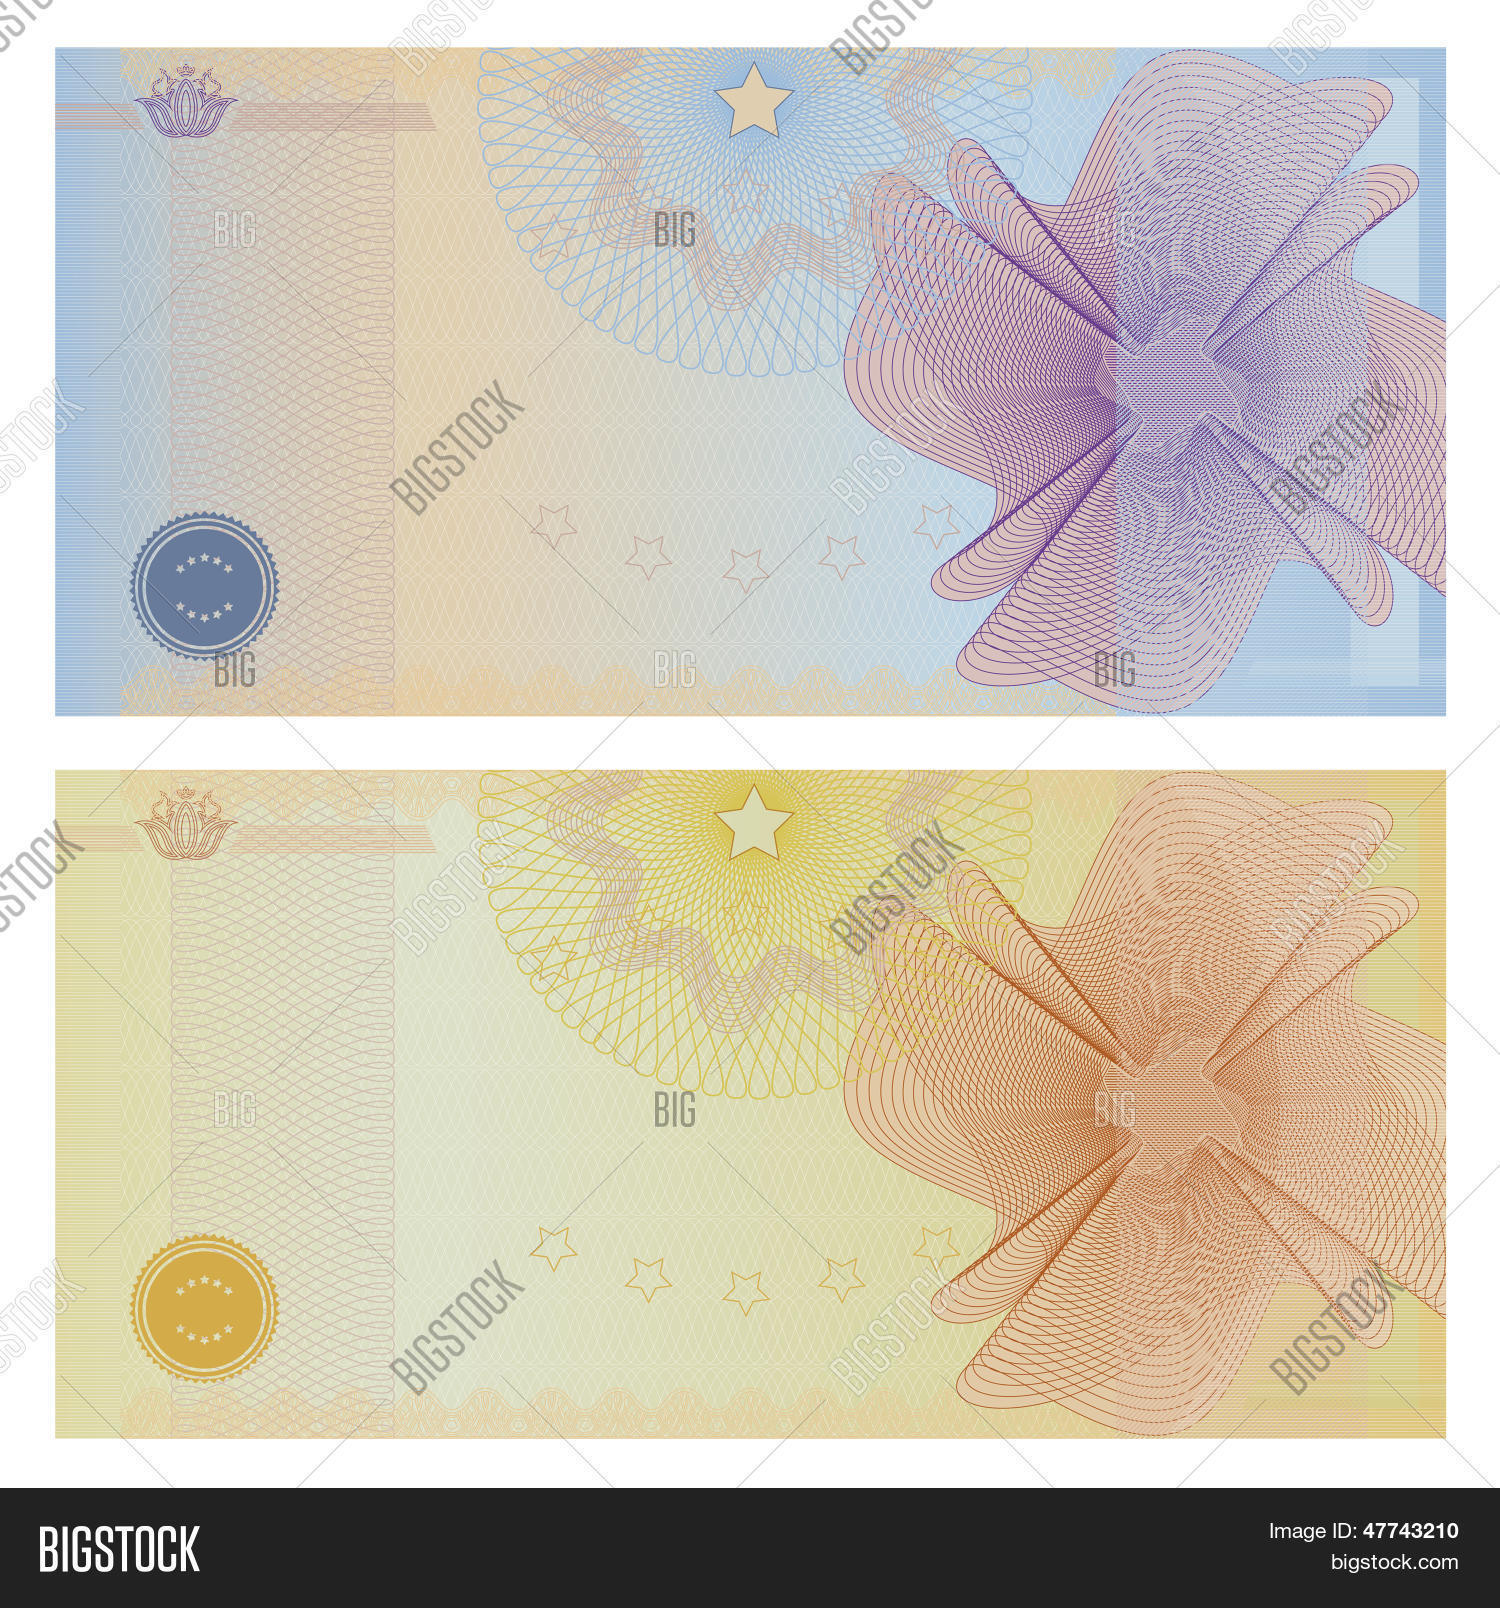 Gift voucher certificate vector photo bigstock gift voucher certificate coupon template banknote money design currency cheque 1betcityfo Gallery